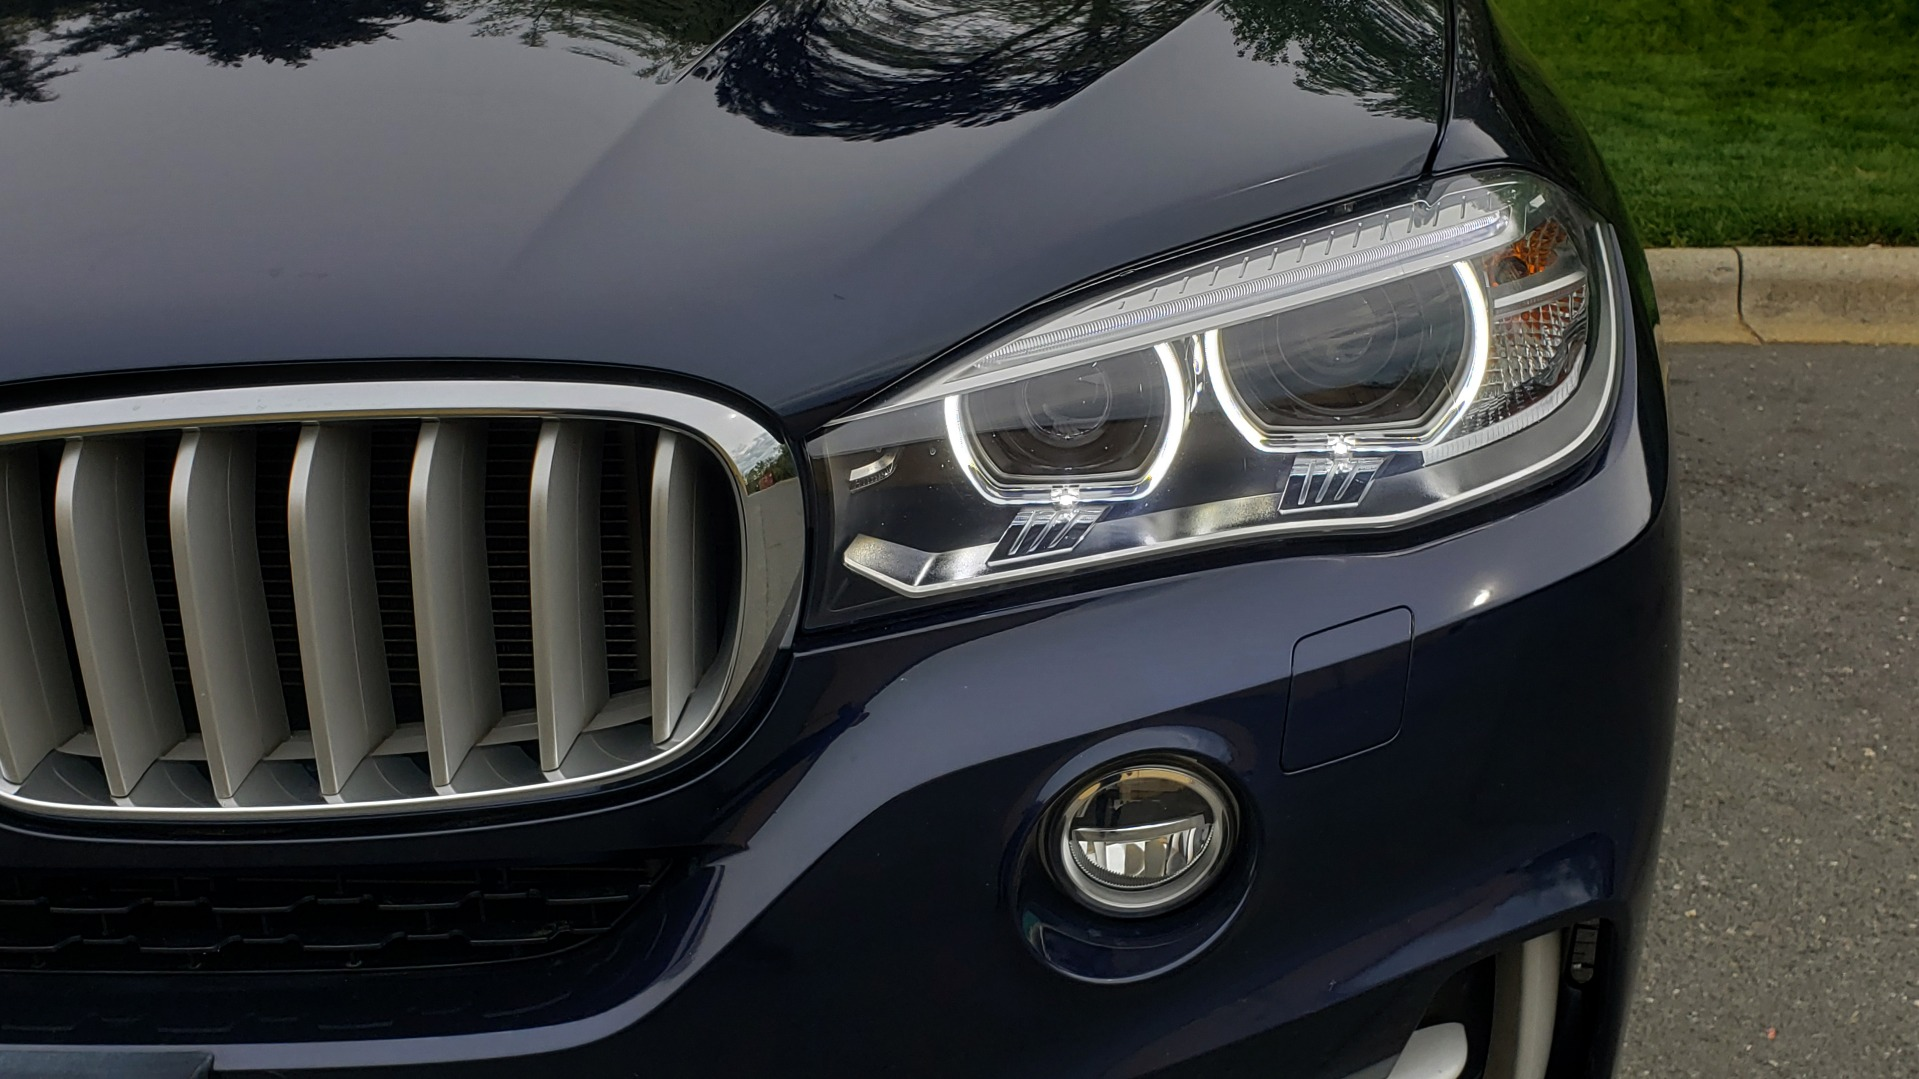 Used 2017 BMW X5 XDRIVE35I PREMIUM / NAV / SUNROOF/ CLD WTHR / HARMAN/KARDON / REARVIEW for sale $30,595 at Formula Imports in Charlotte NC 28227 22